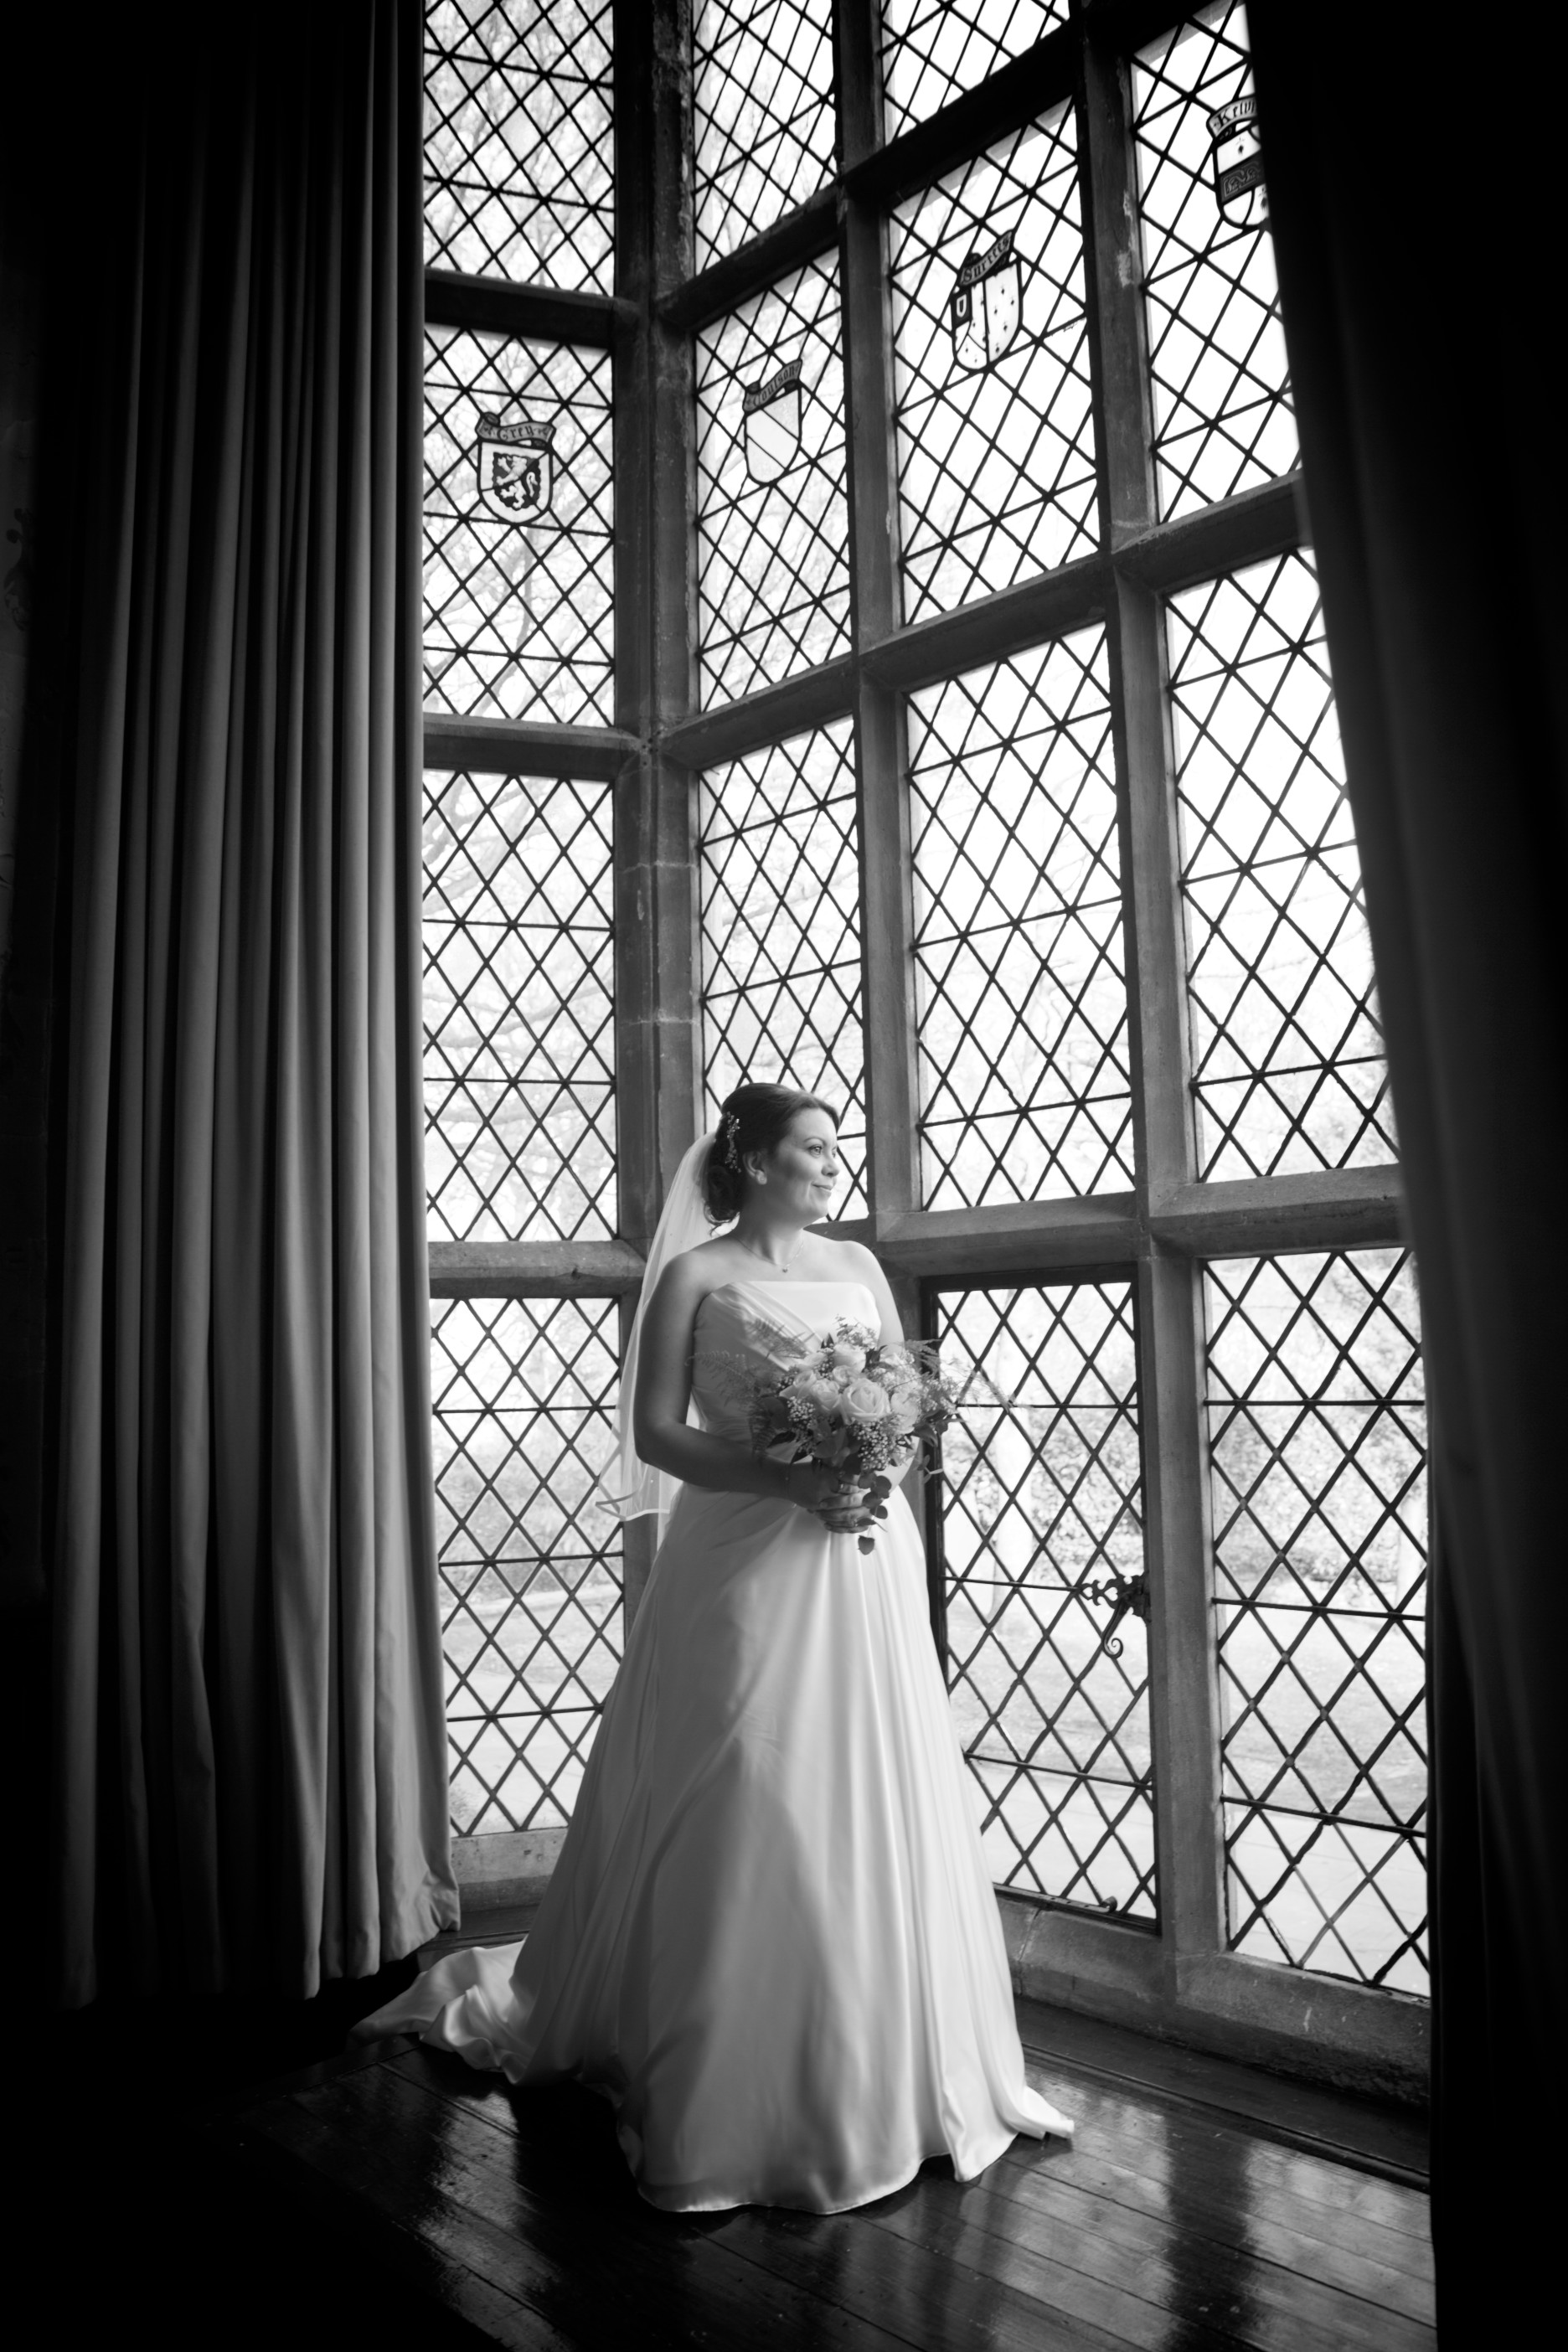 Lenses for Hire review - A shot from the wedding again with theCanon 24-70L 2.8ii USM